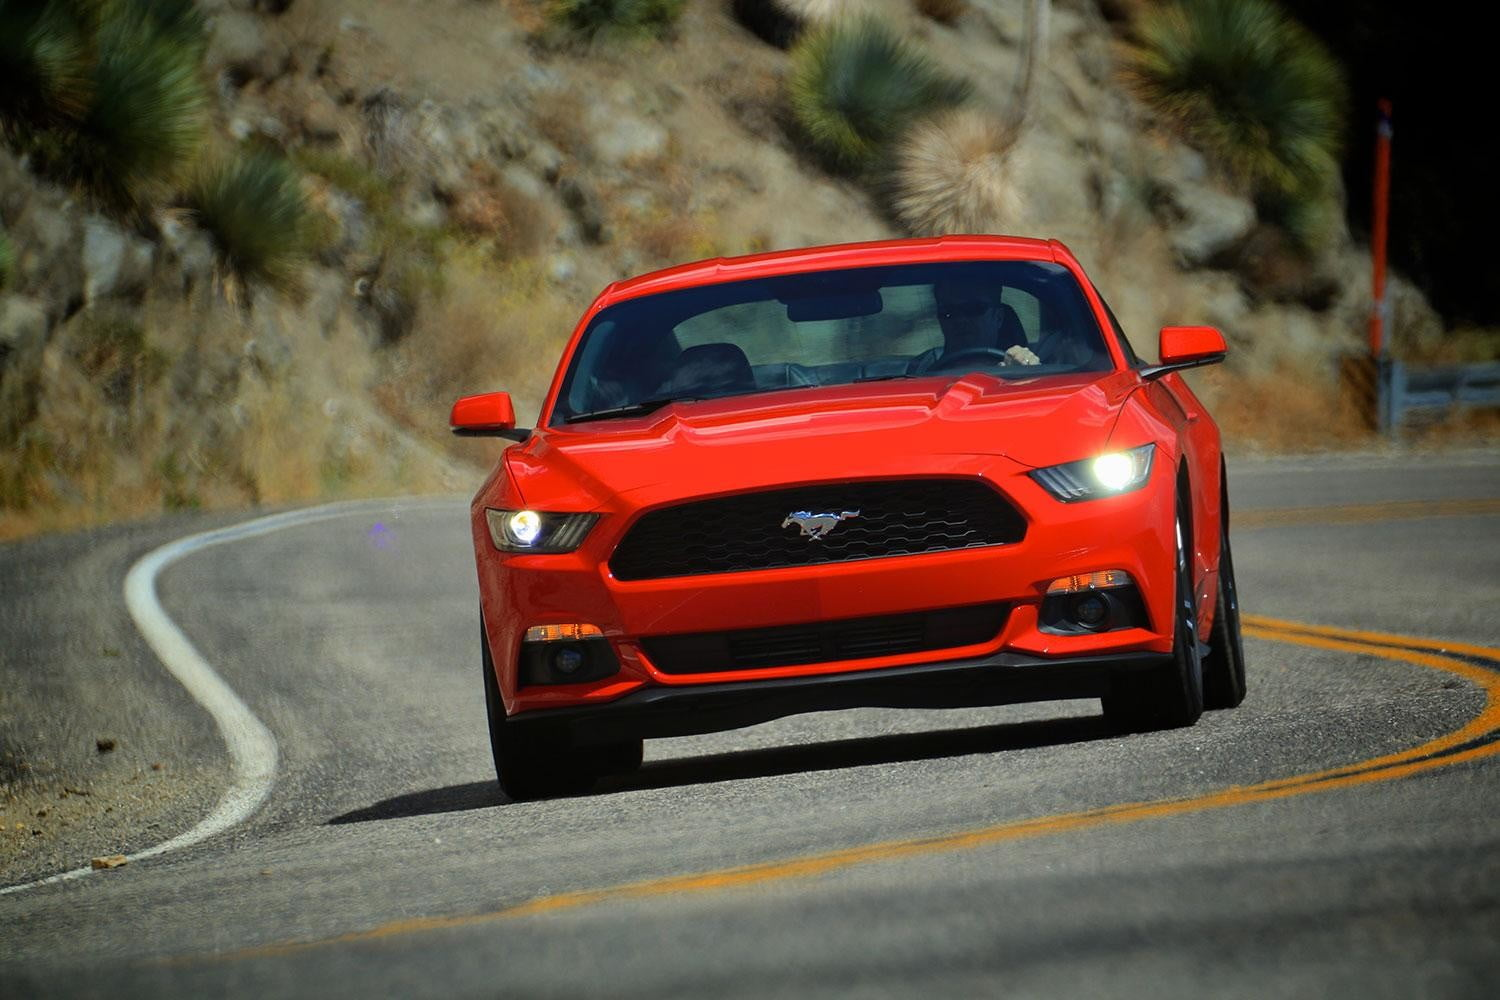 2015 Ford Mustang driving 3